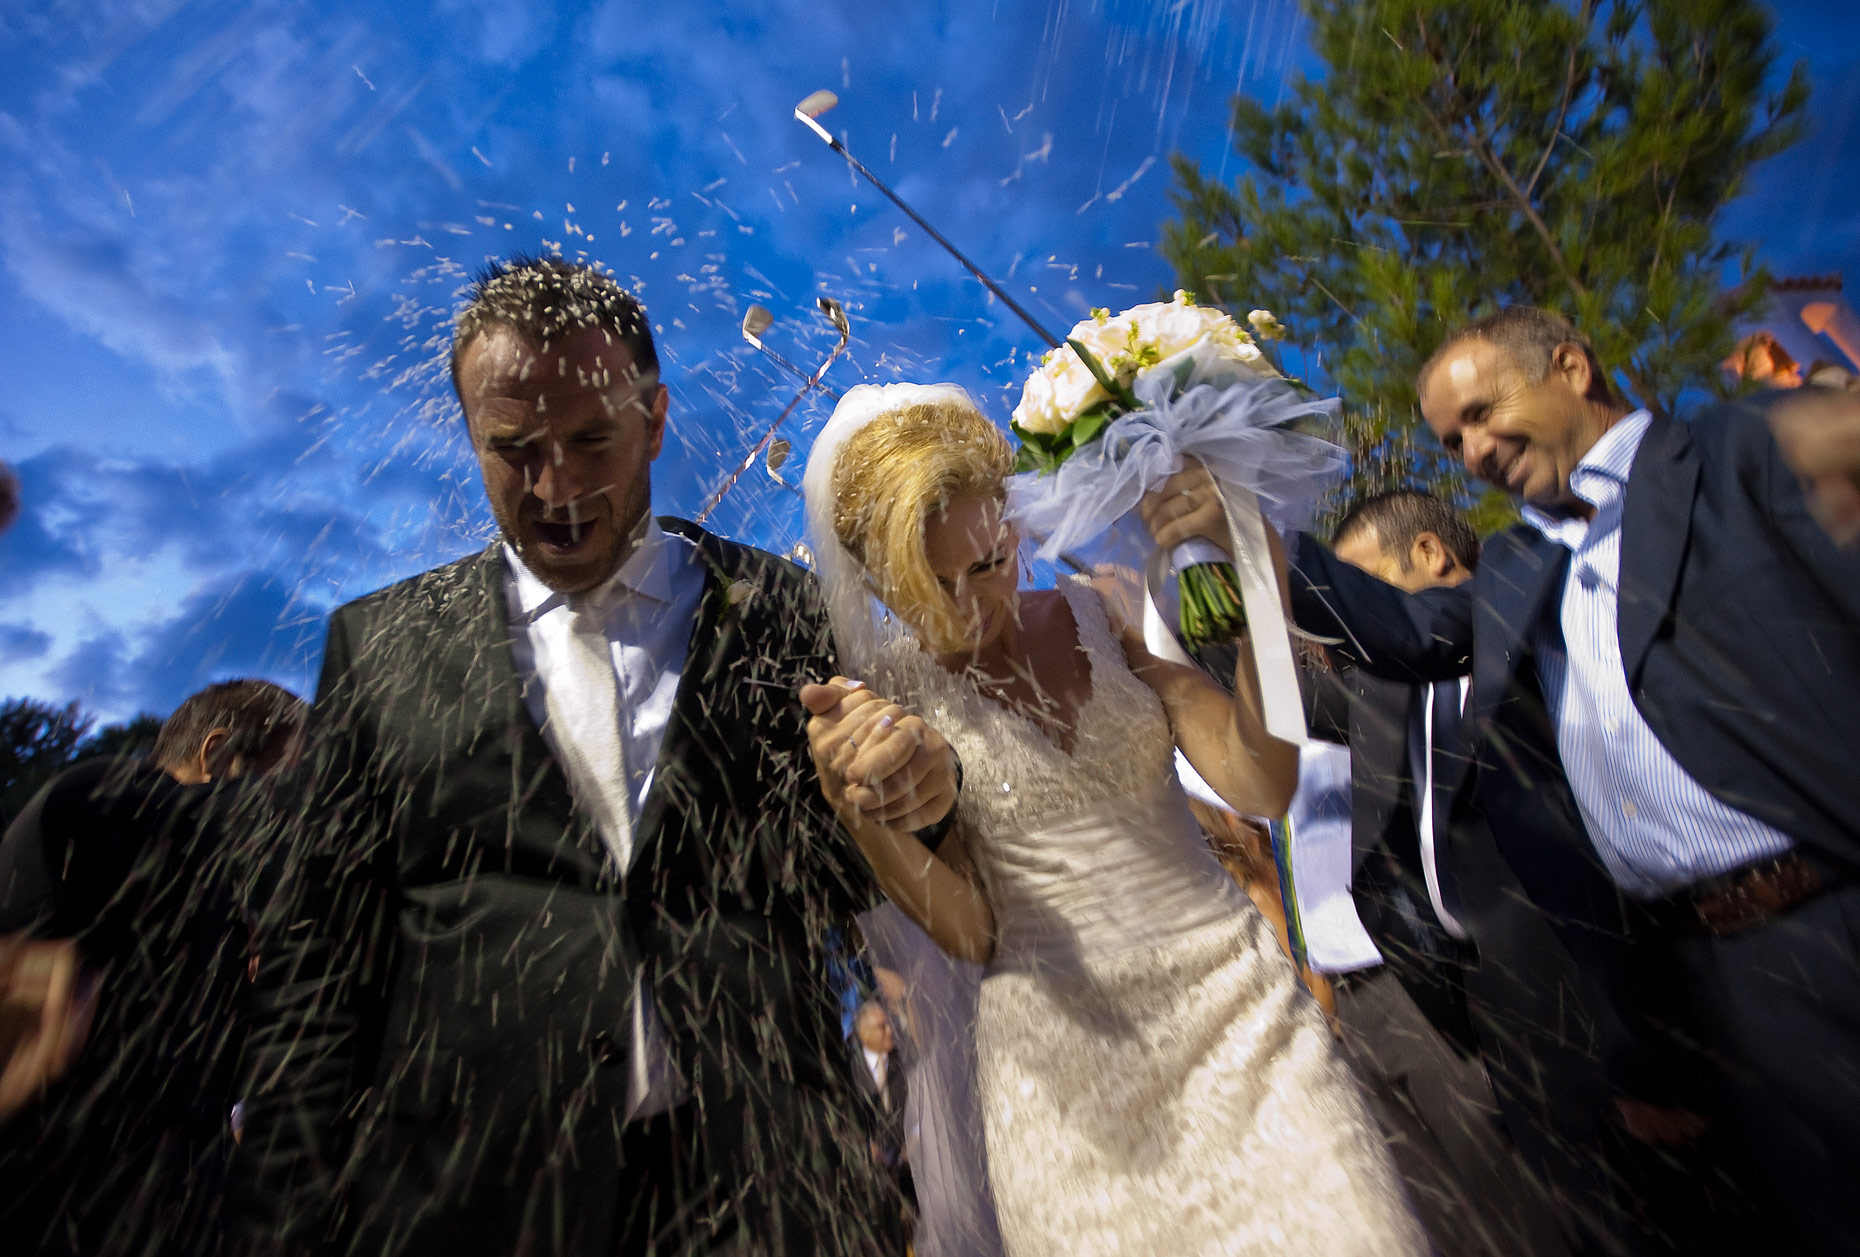 glyfada wedding photo